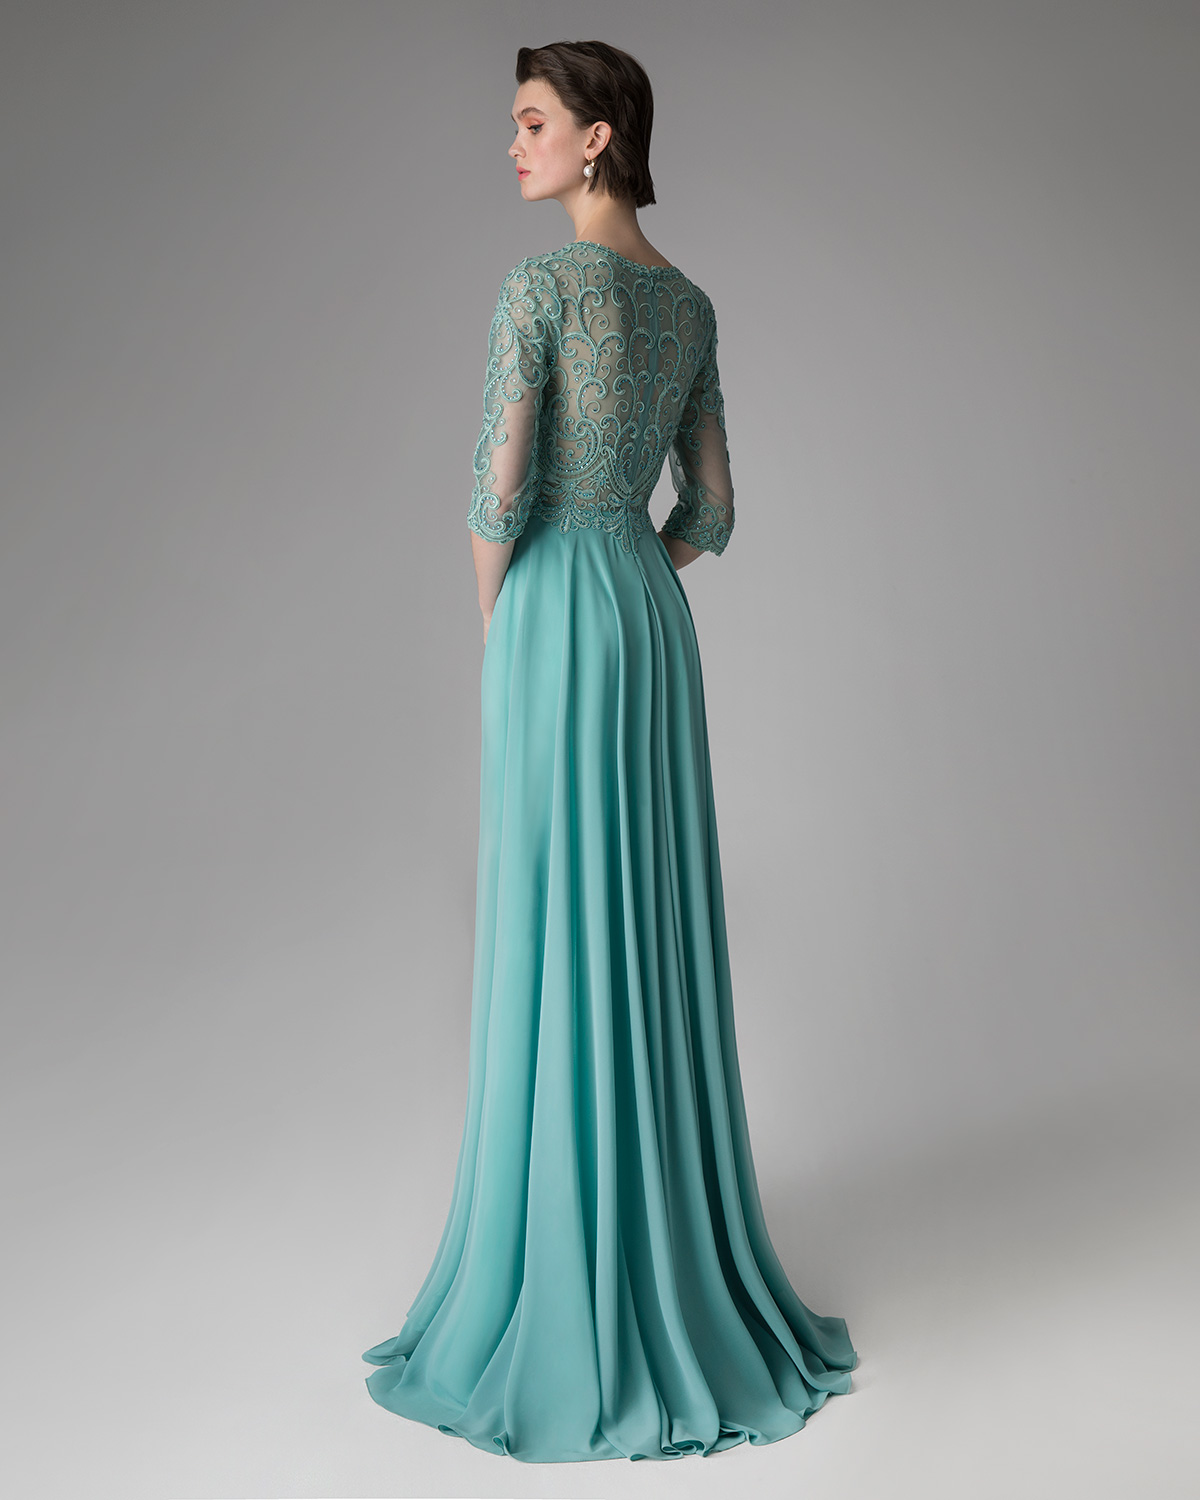 Long evening dress with applique lace on the top and long sleeves